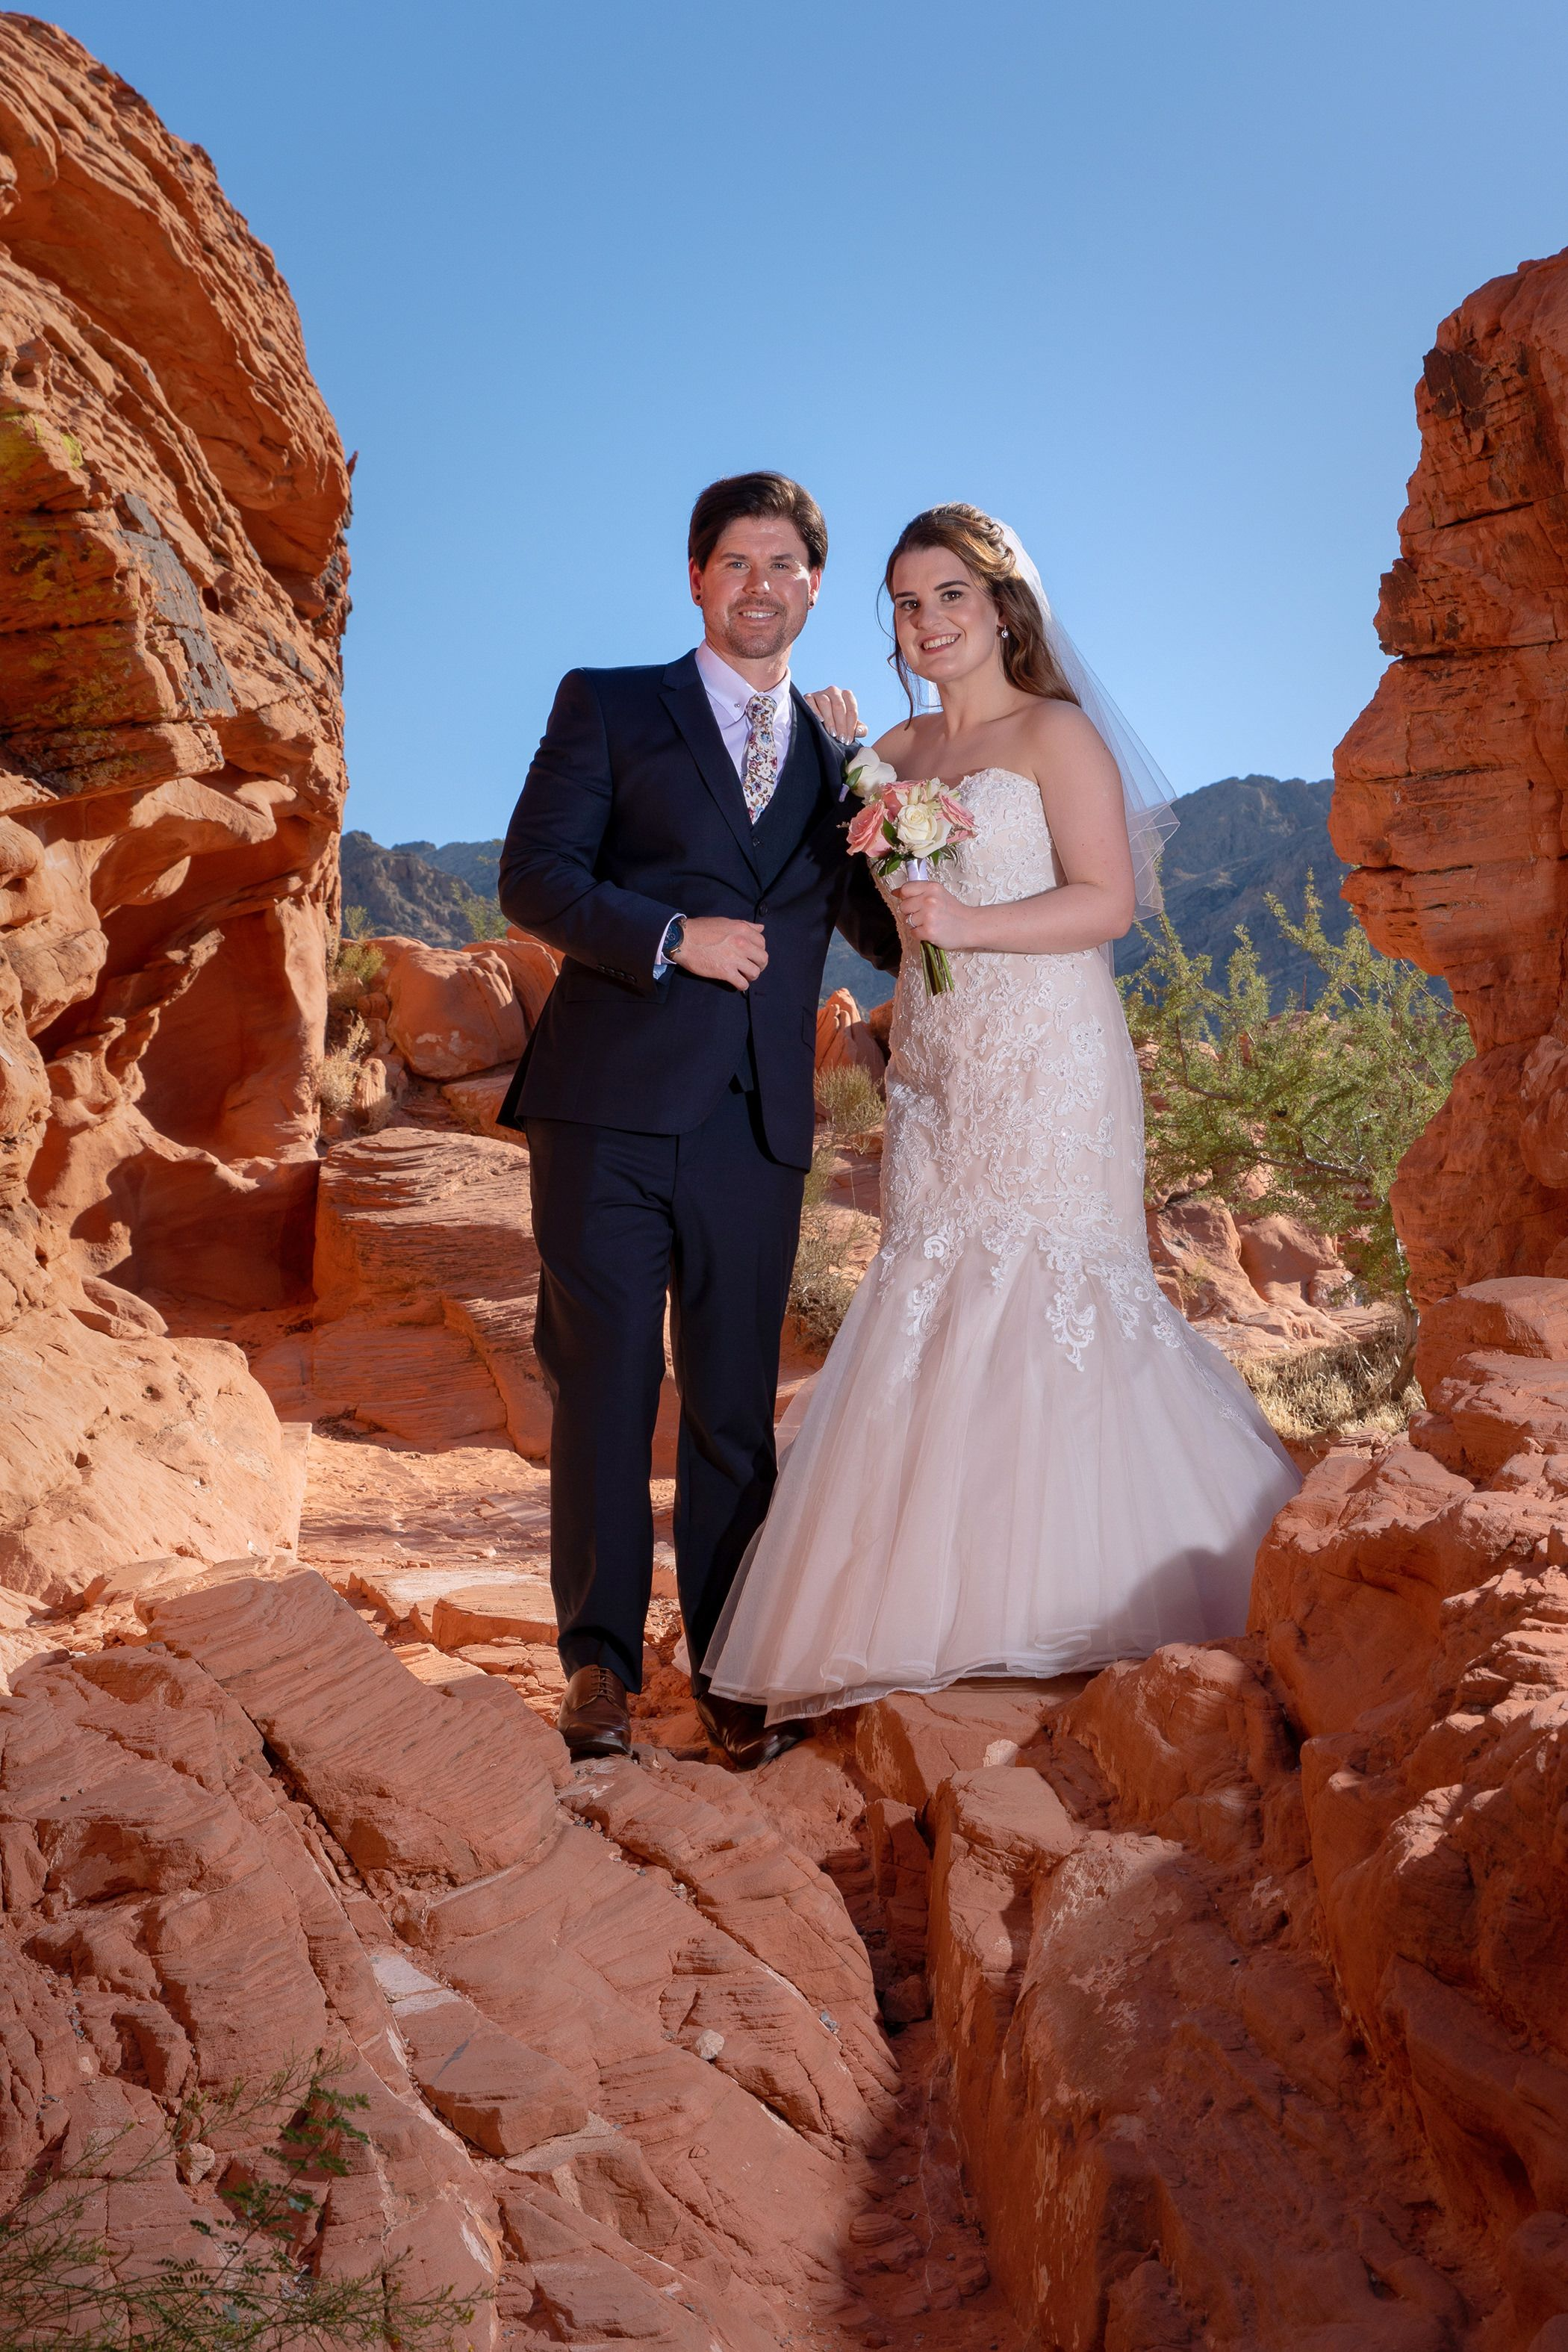 the happy wedding couple in Las Vegas Valley of fire